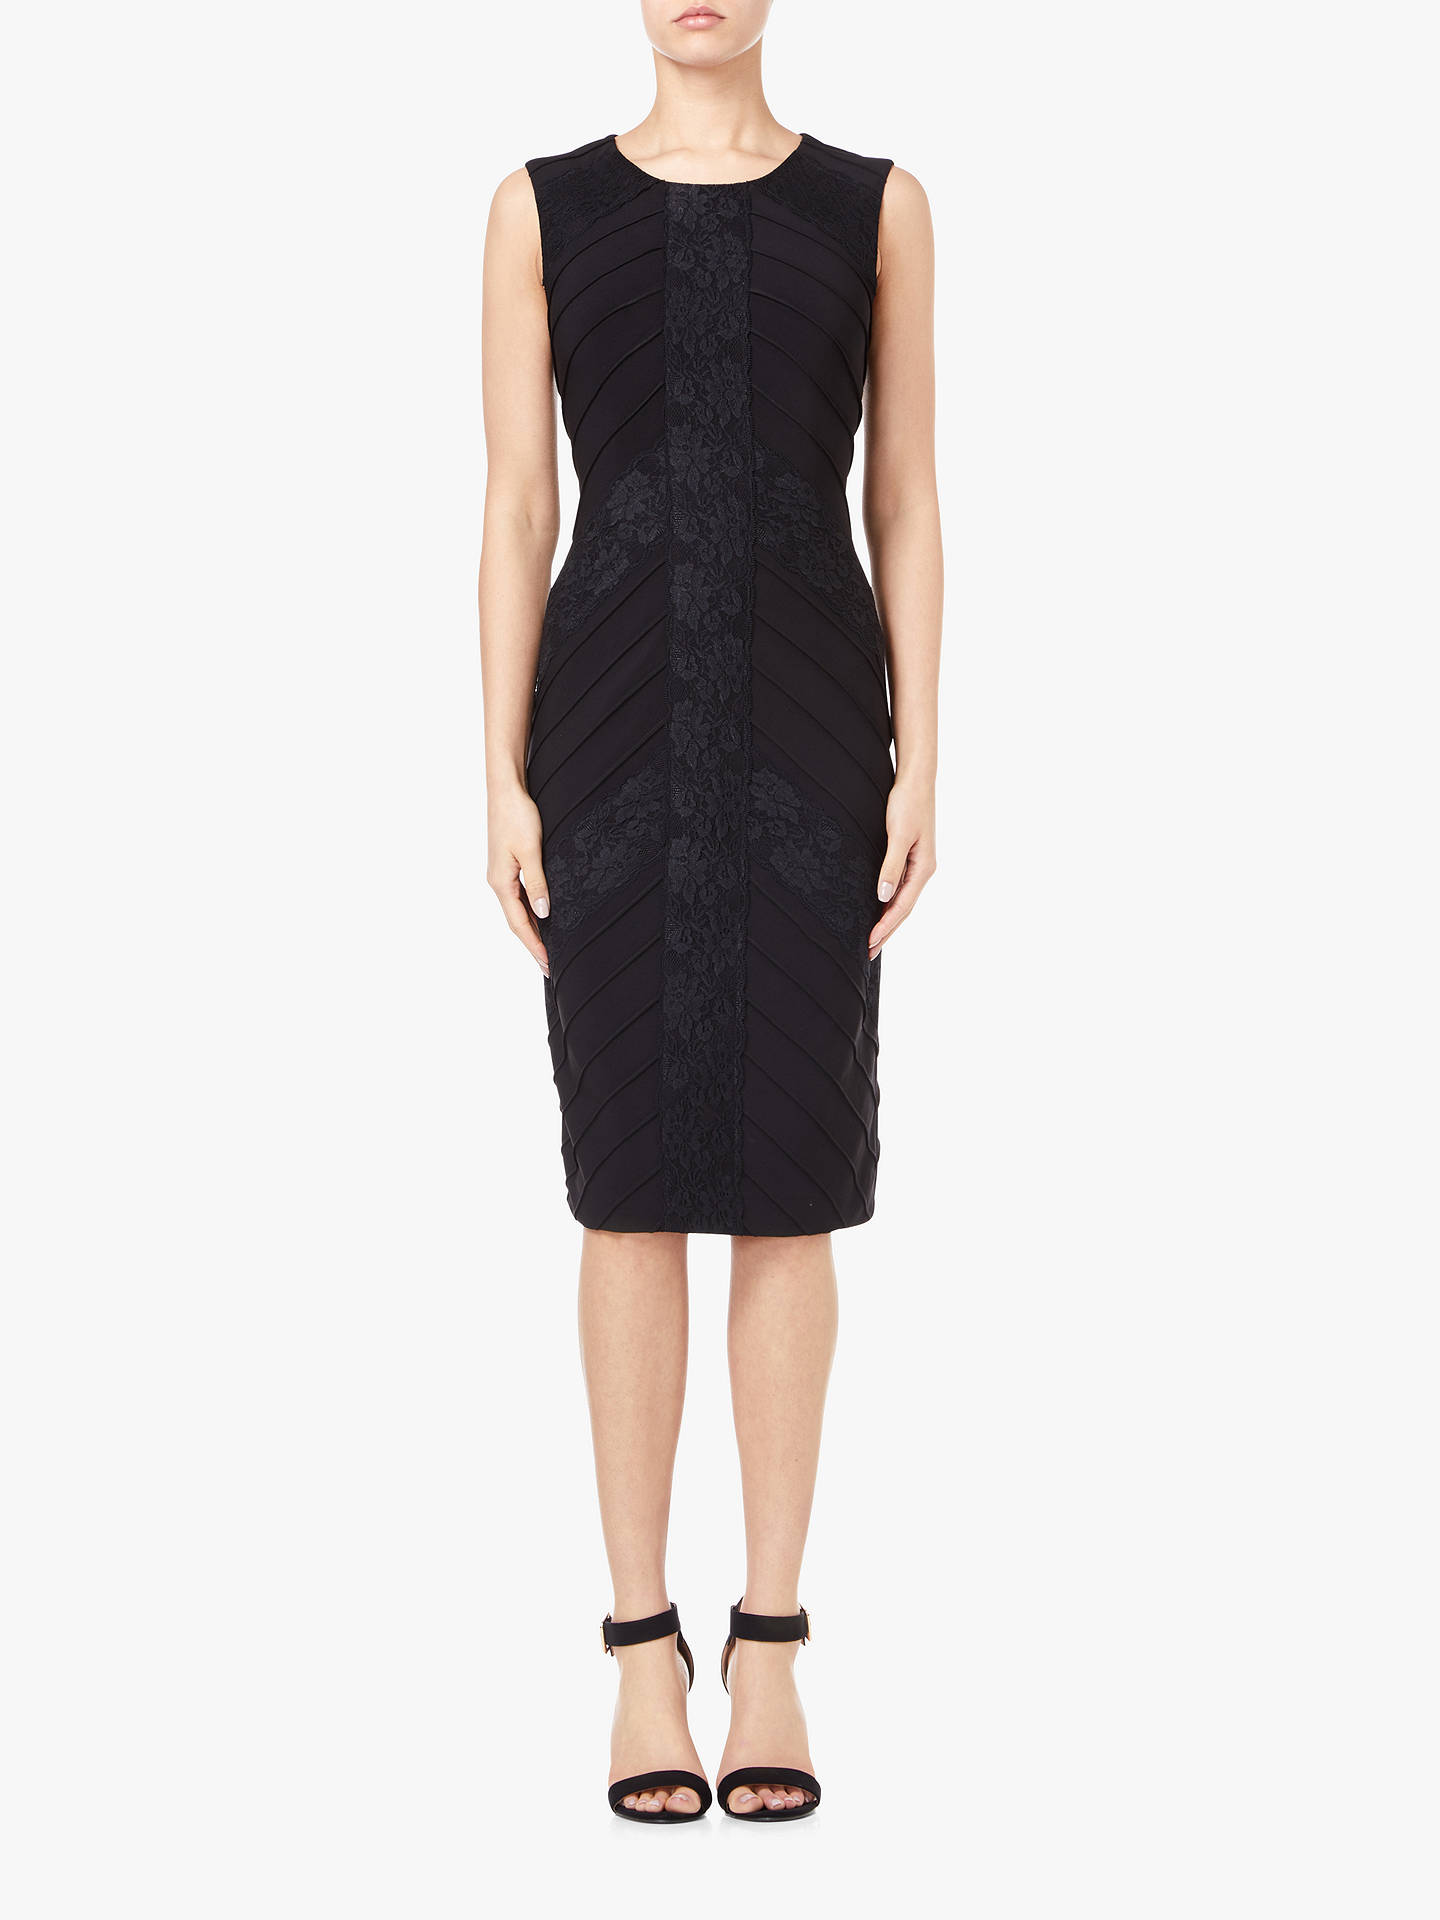 Buy Adrianna Papell Matte Jersey Sheath Dress, Black, 10 Online at johnlewis.com